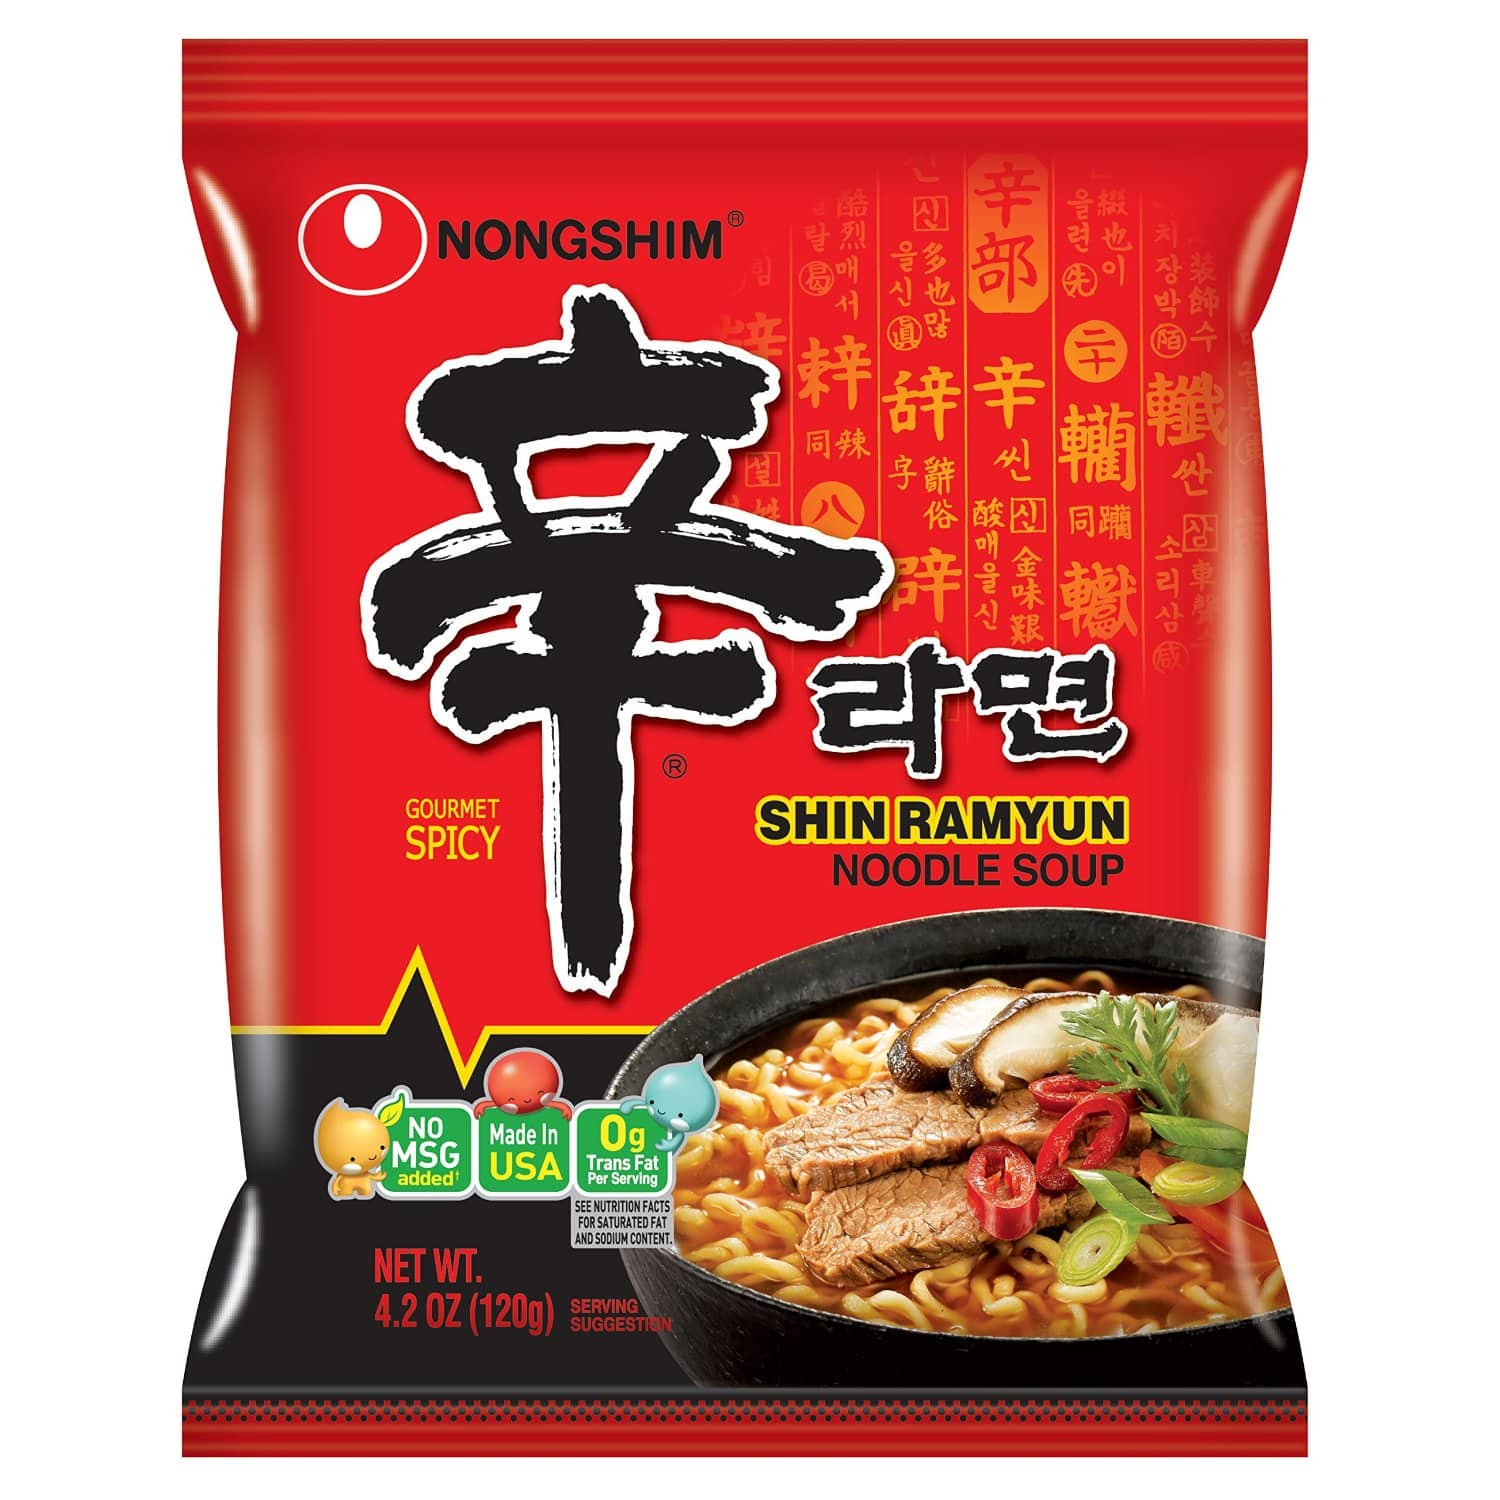 Nongshim Shin Ramyun Noodle Soup, Gourmet Spicy, 4.2 Ounce (Pack of 20)  $15.20 or lower - Amazon